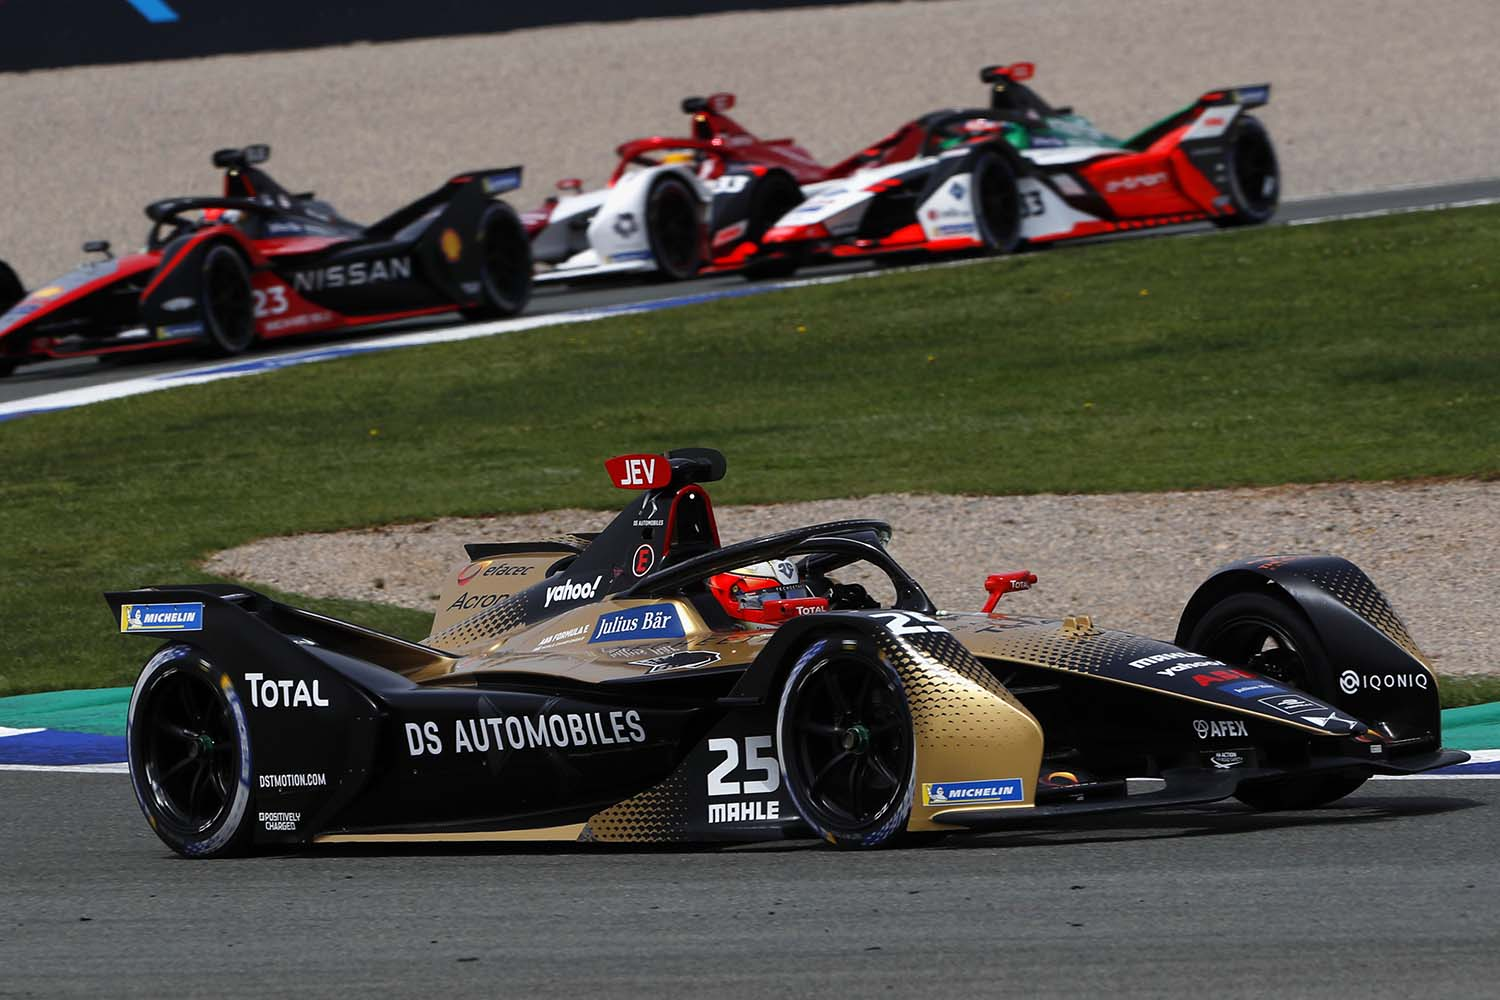 Points For Vergne And Ds Techeetah In The Second Race Of The Valencia E-prix